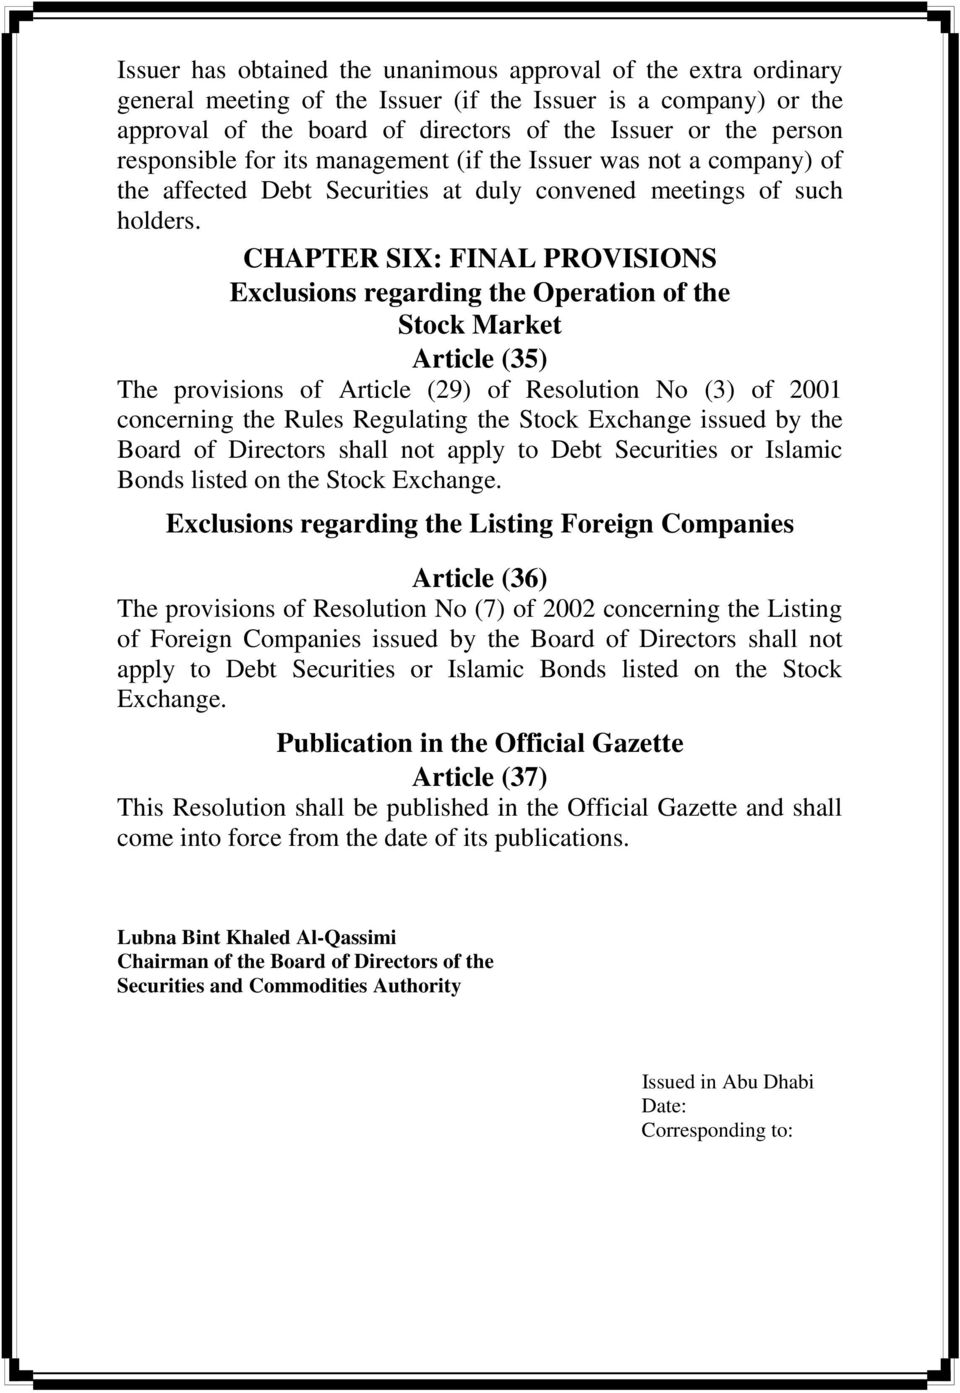 CHAPTER SIX: FINAL PROVISIONS Exclusions regarding the Operation of the Stock Market Article (35) The provisions of Article (29) of Resolution No (3) of 2001 concerning the Rules Regulating the Stock